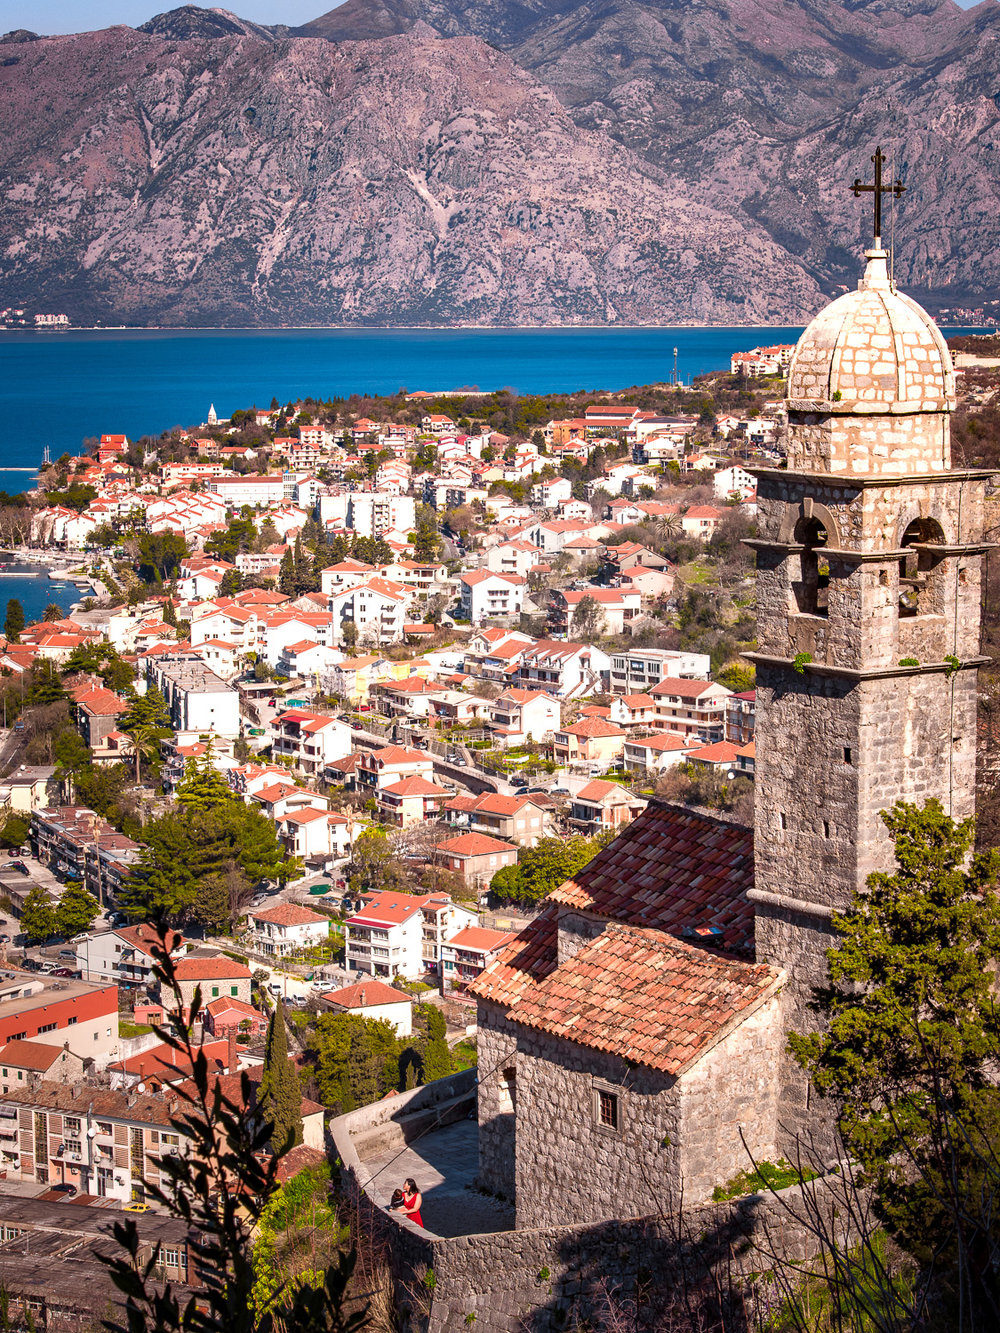 Our Lady of Remedy looking out over Kotor, Montenegro and the Bay of Kotor.